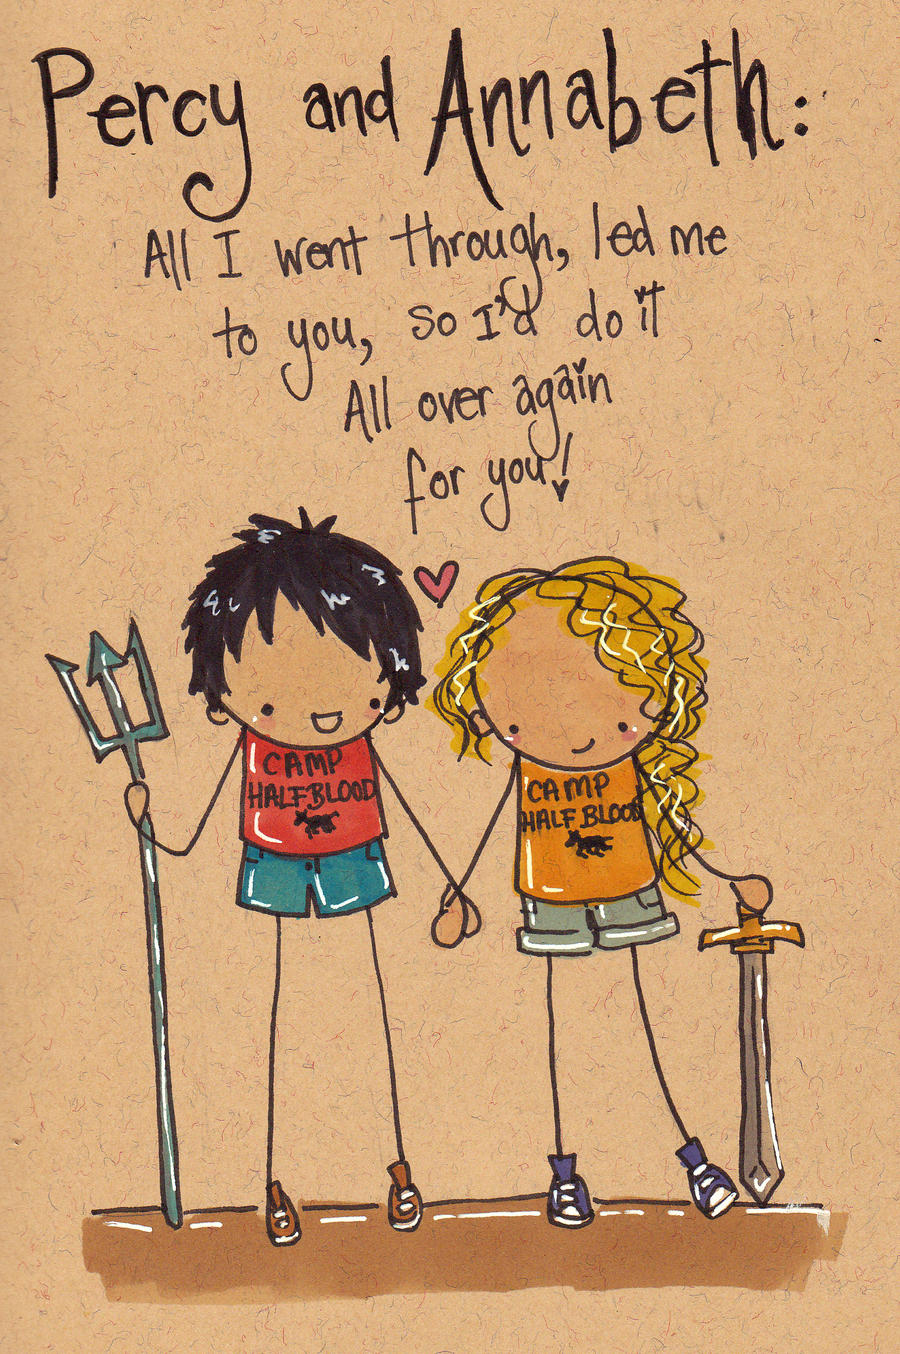 Percy and Annabeth by Pinkie-Perfect on DeviantArt